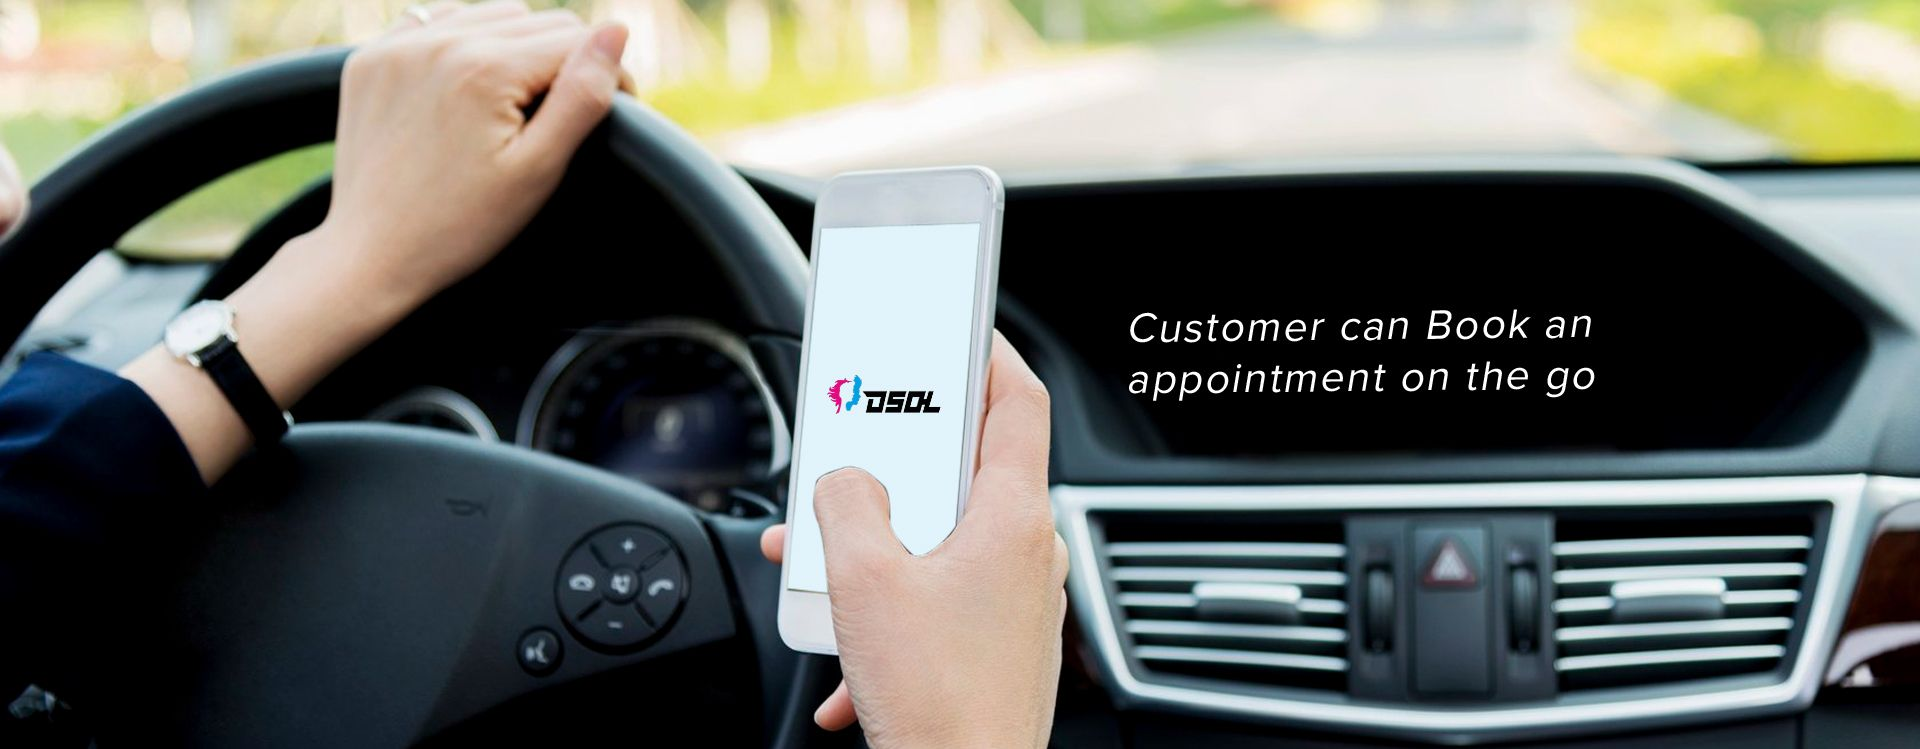 Customer can Book an appointment on the go | easy salon sofware